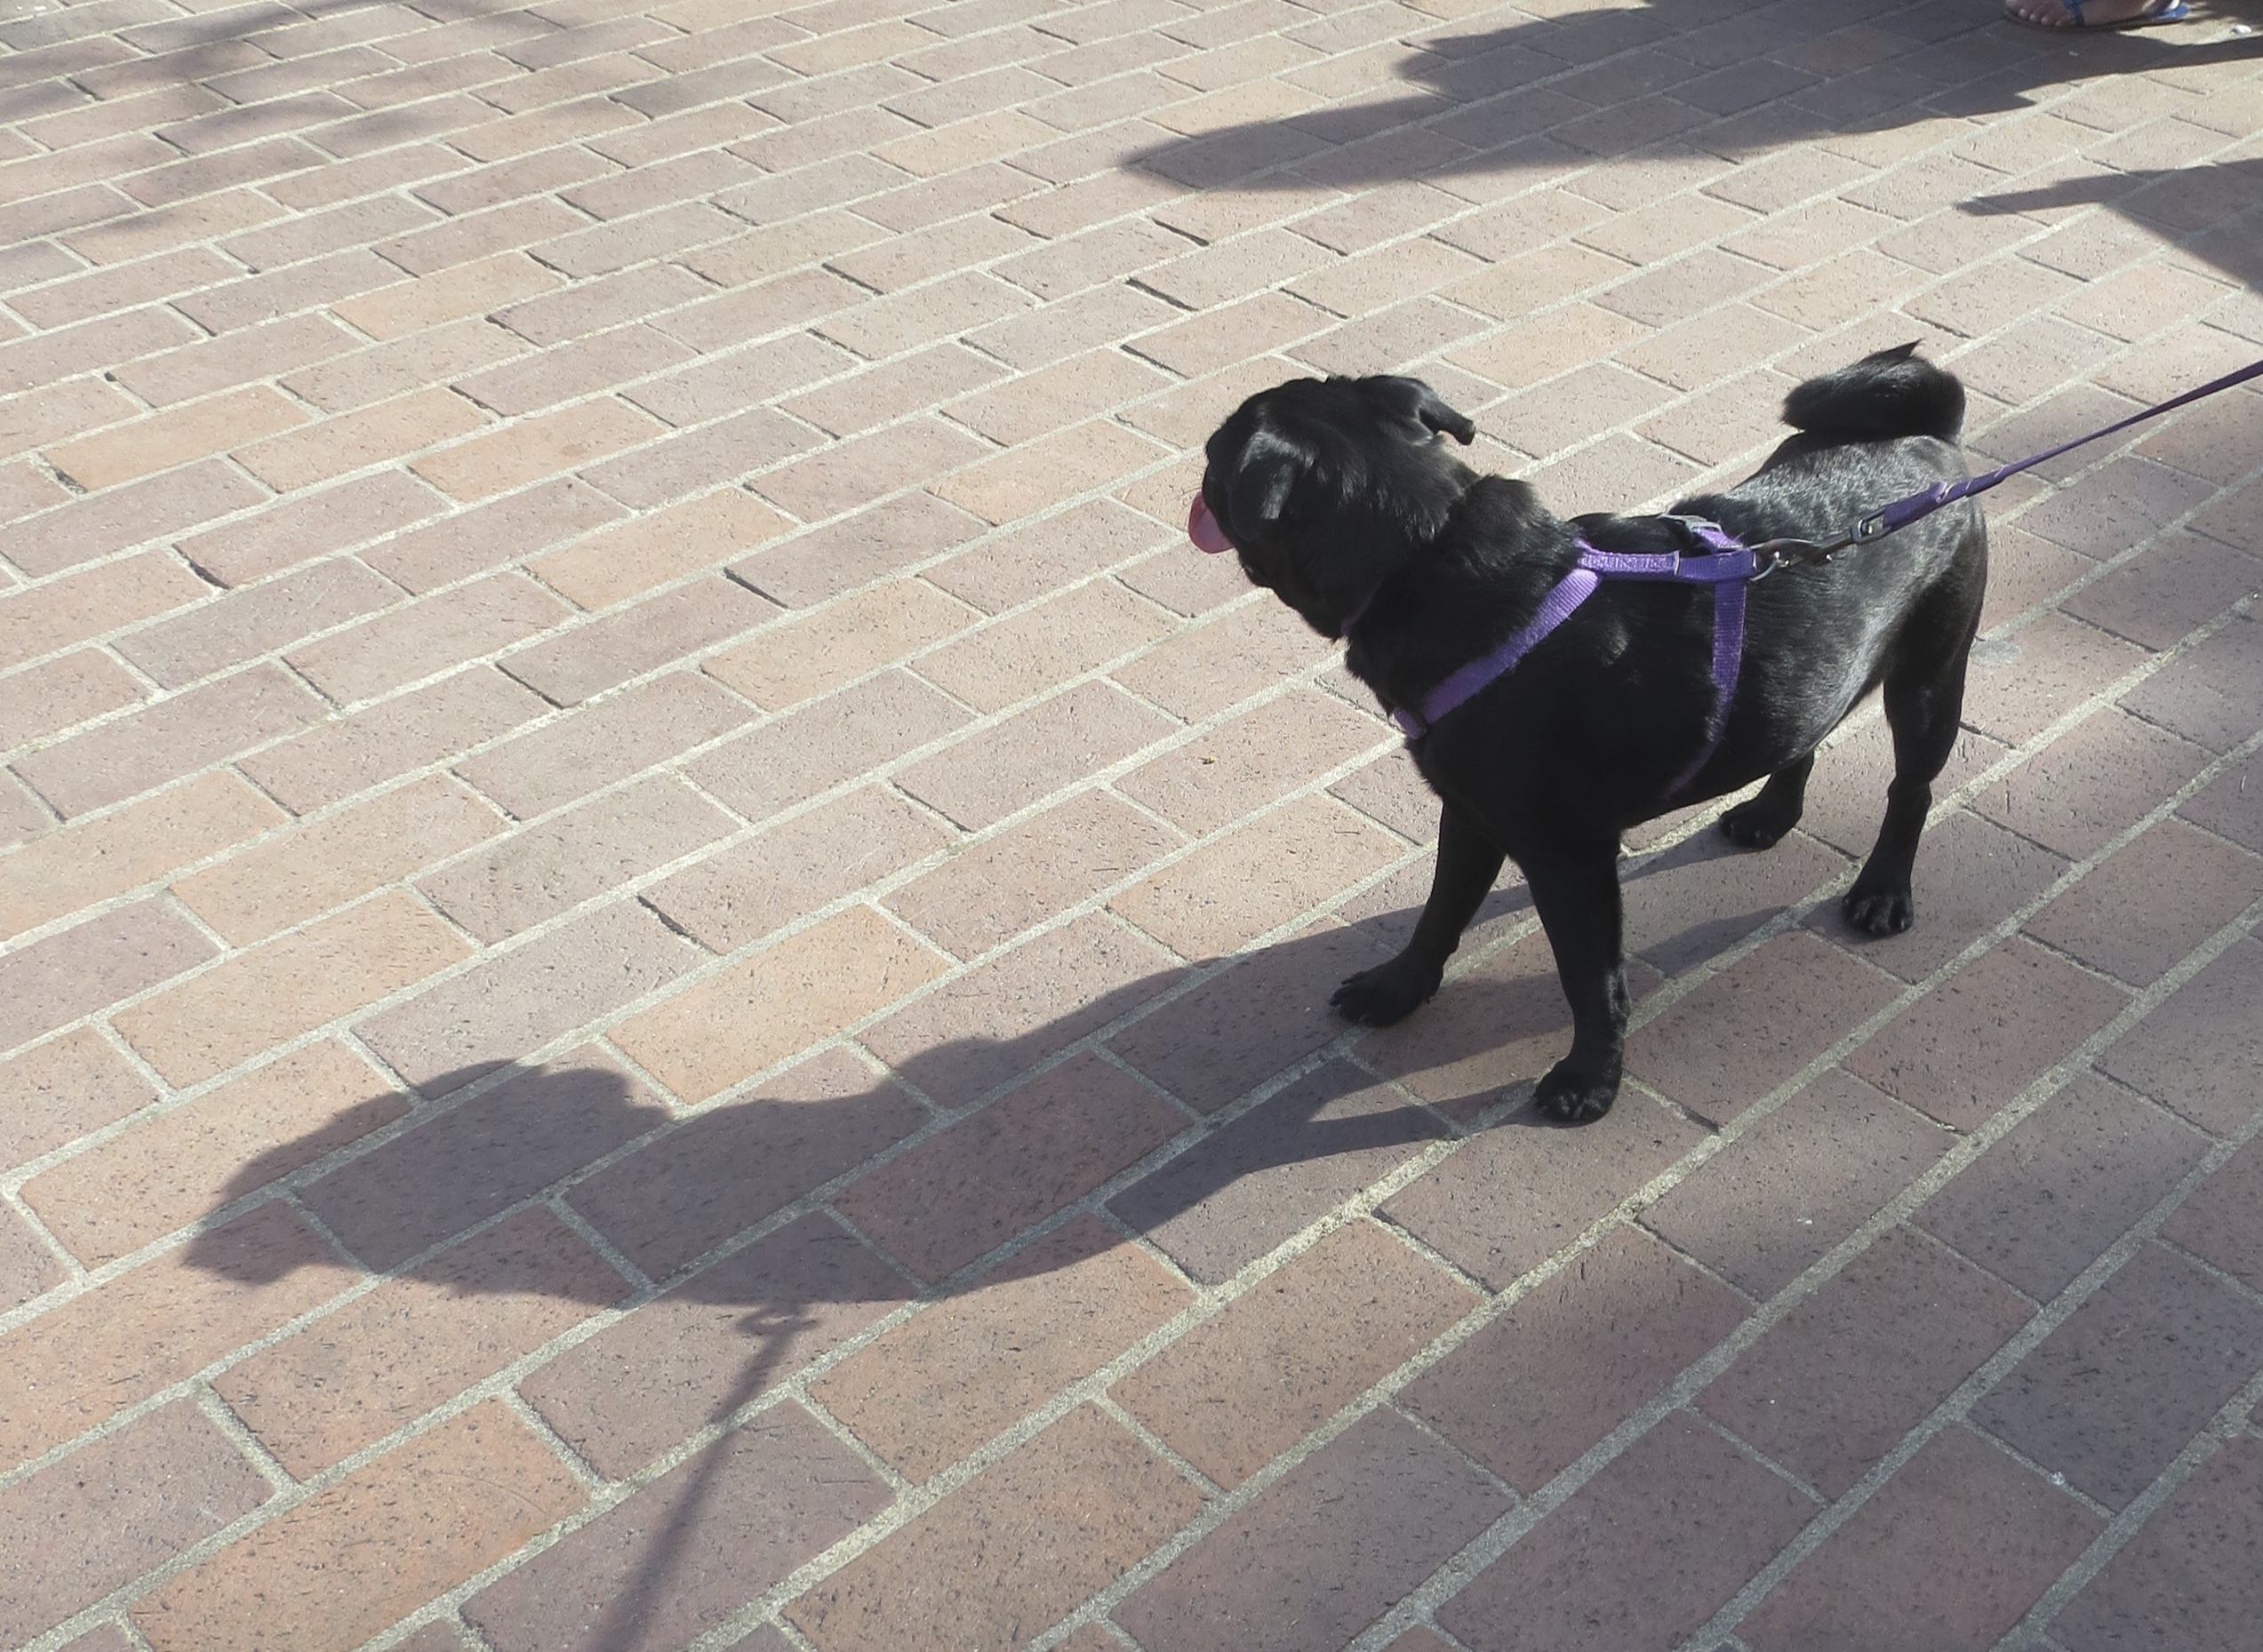 Black Pug Puppy From Behind With Tongue